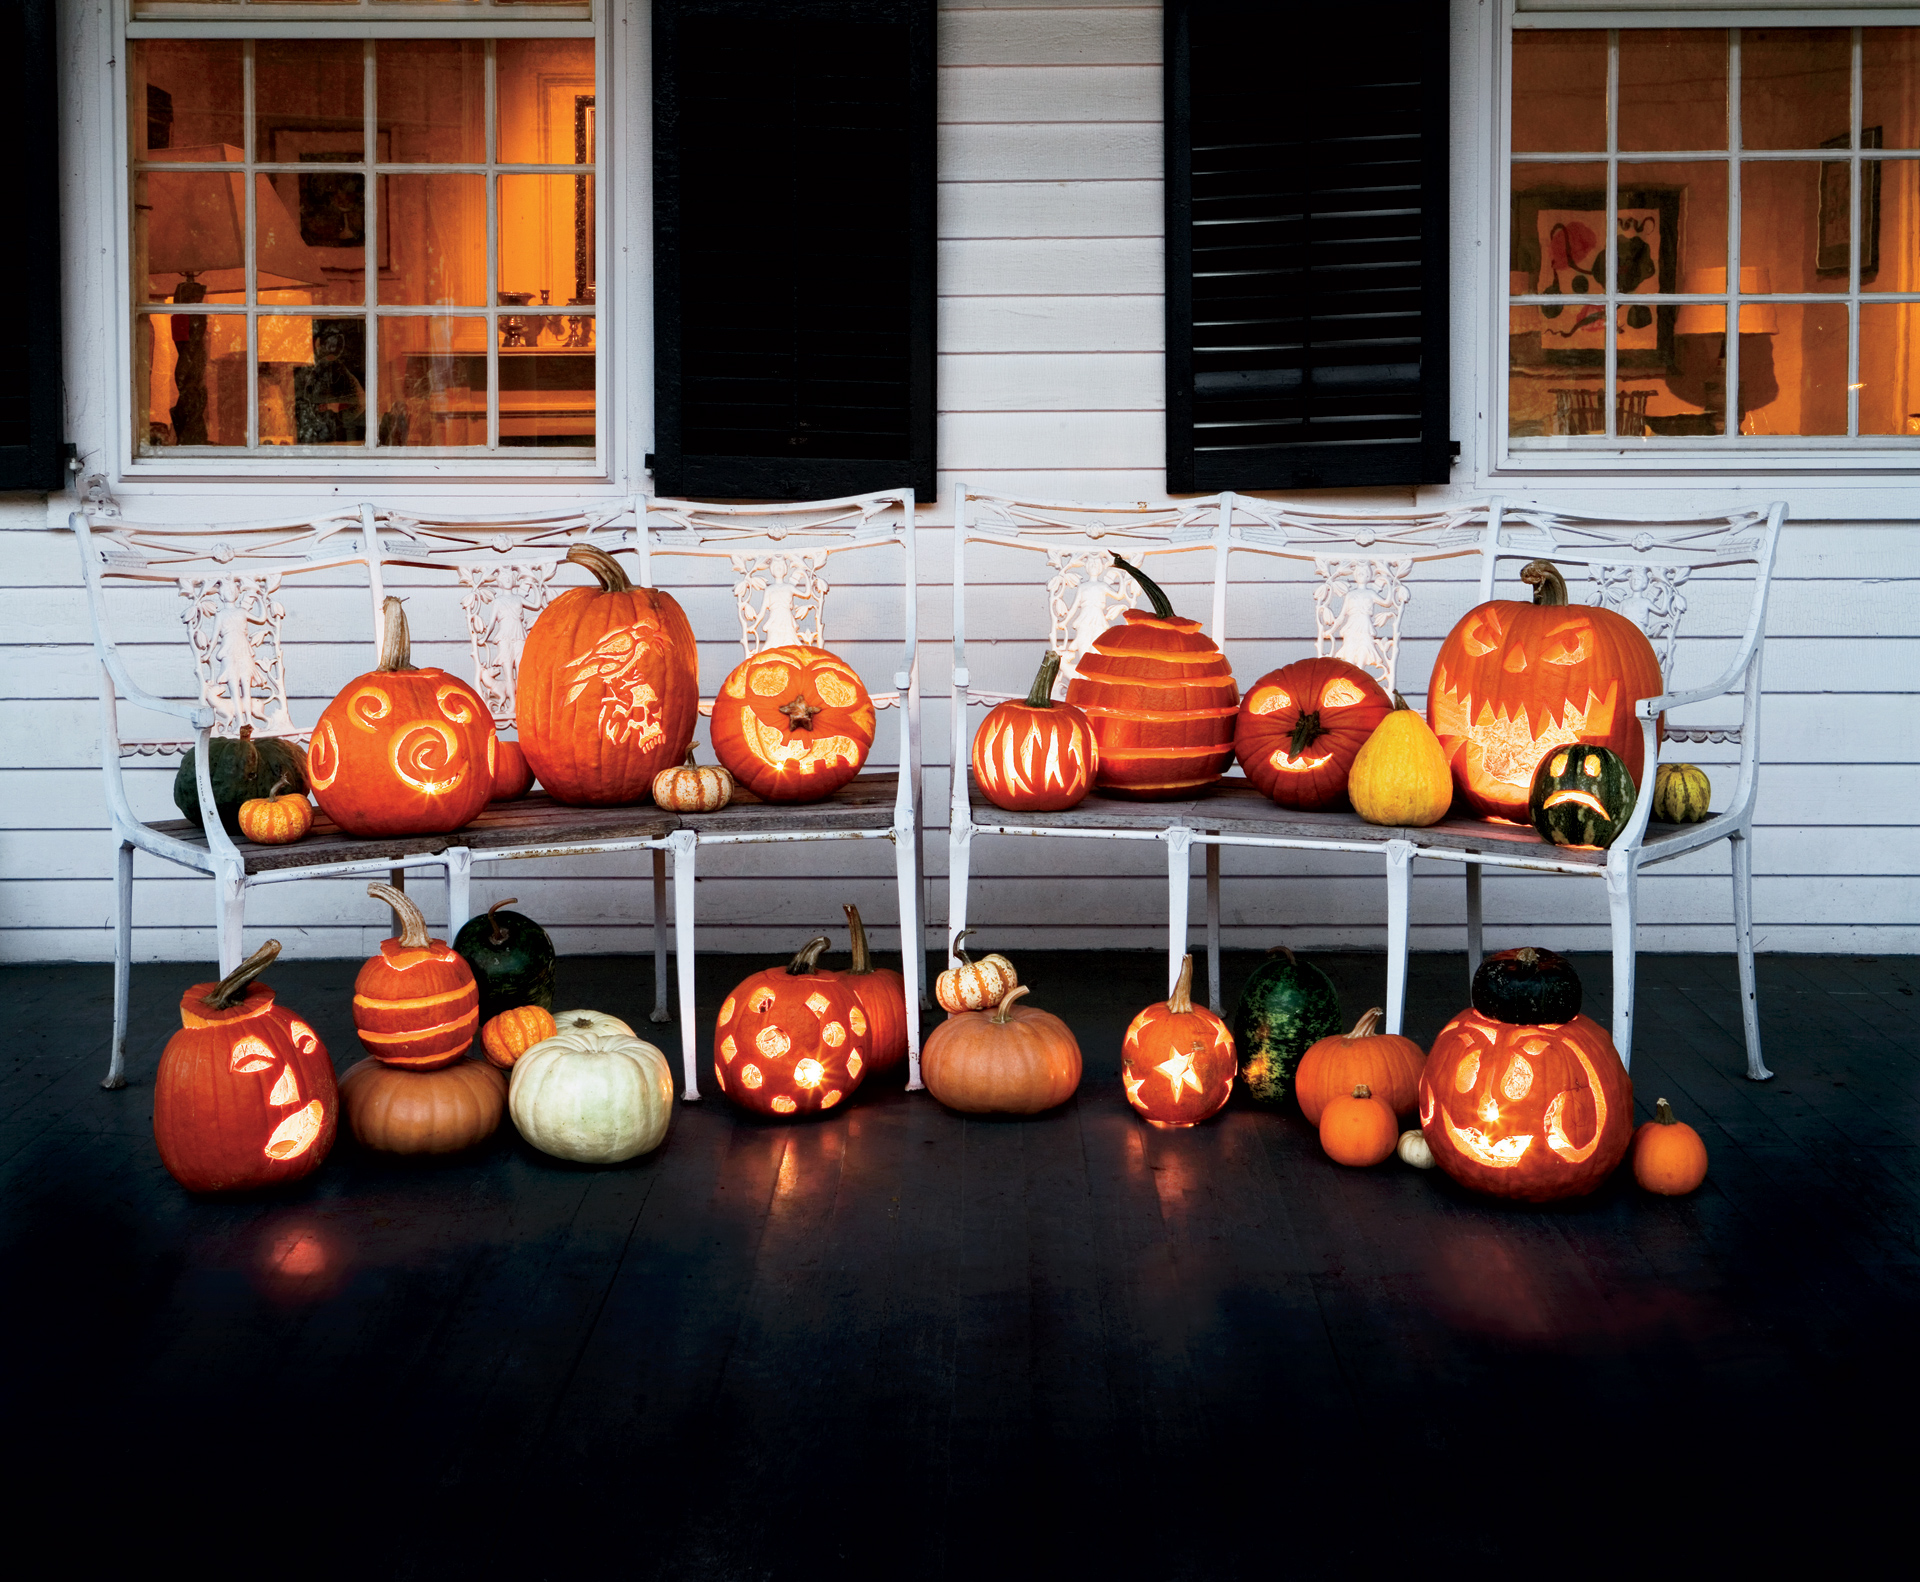 11 Fun Halloween Decorating Ideas - Easy Halloween Decorations